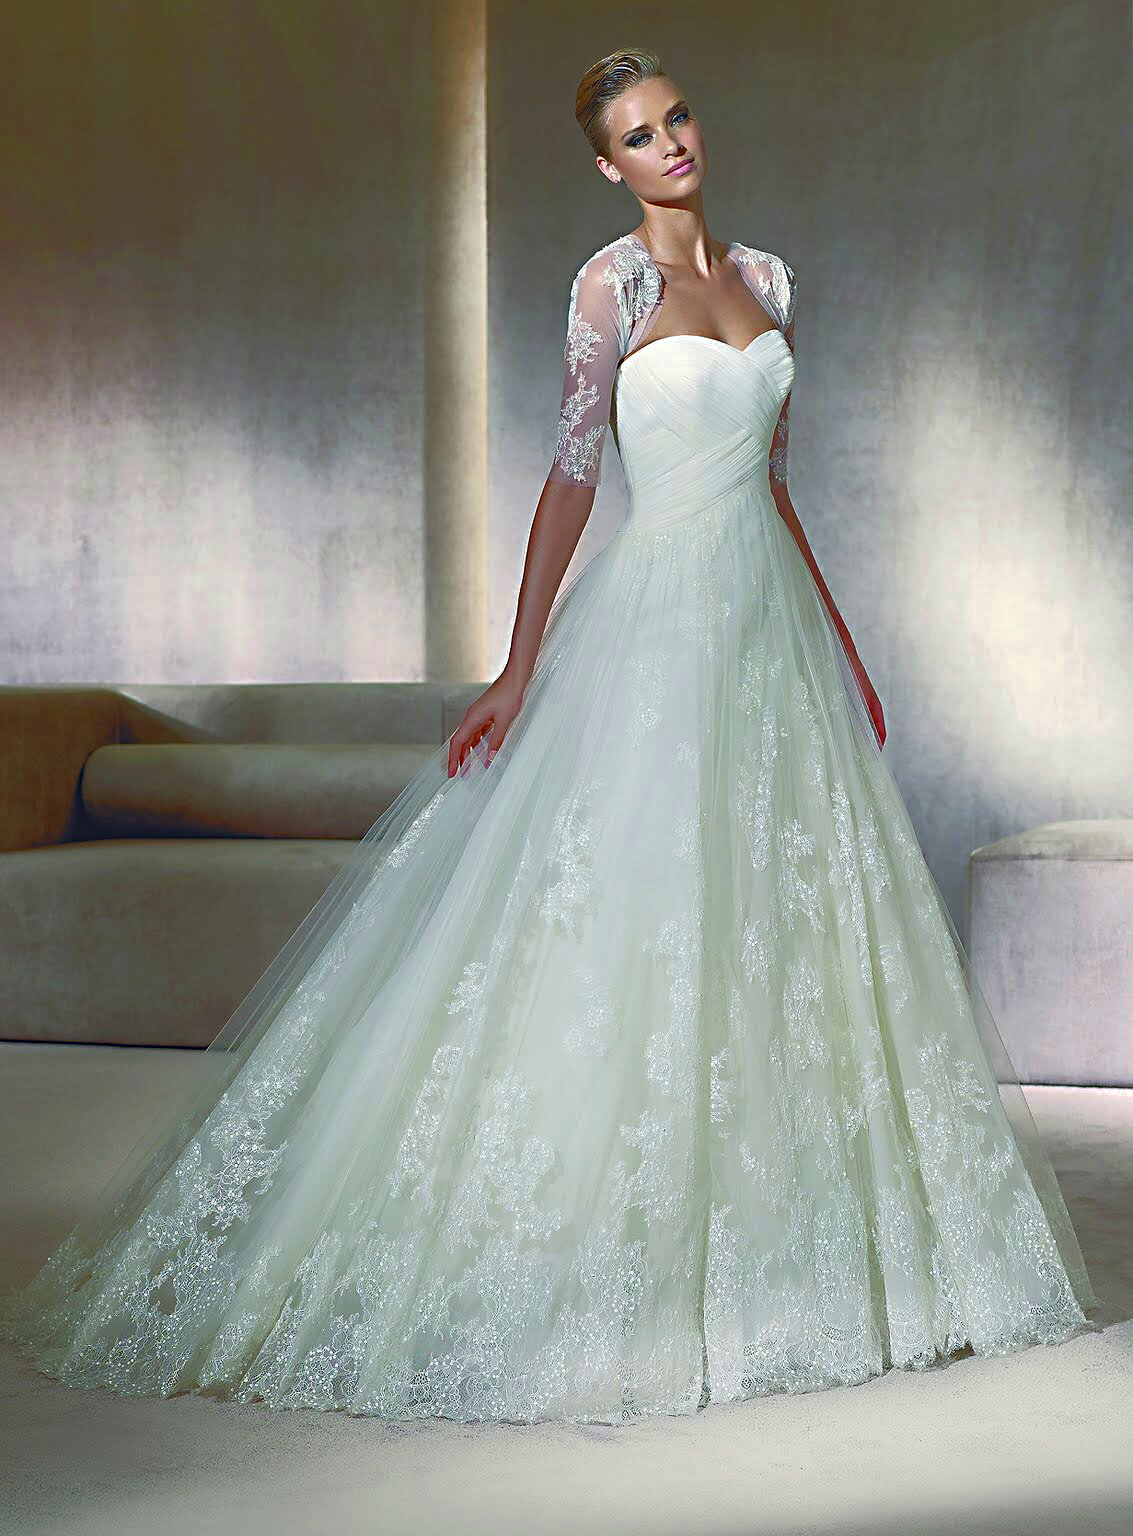 The Most Stylish Wedding Dresses : The most expensive wedding dresses photo browse pictures and